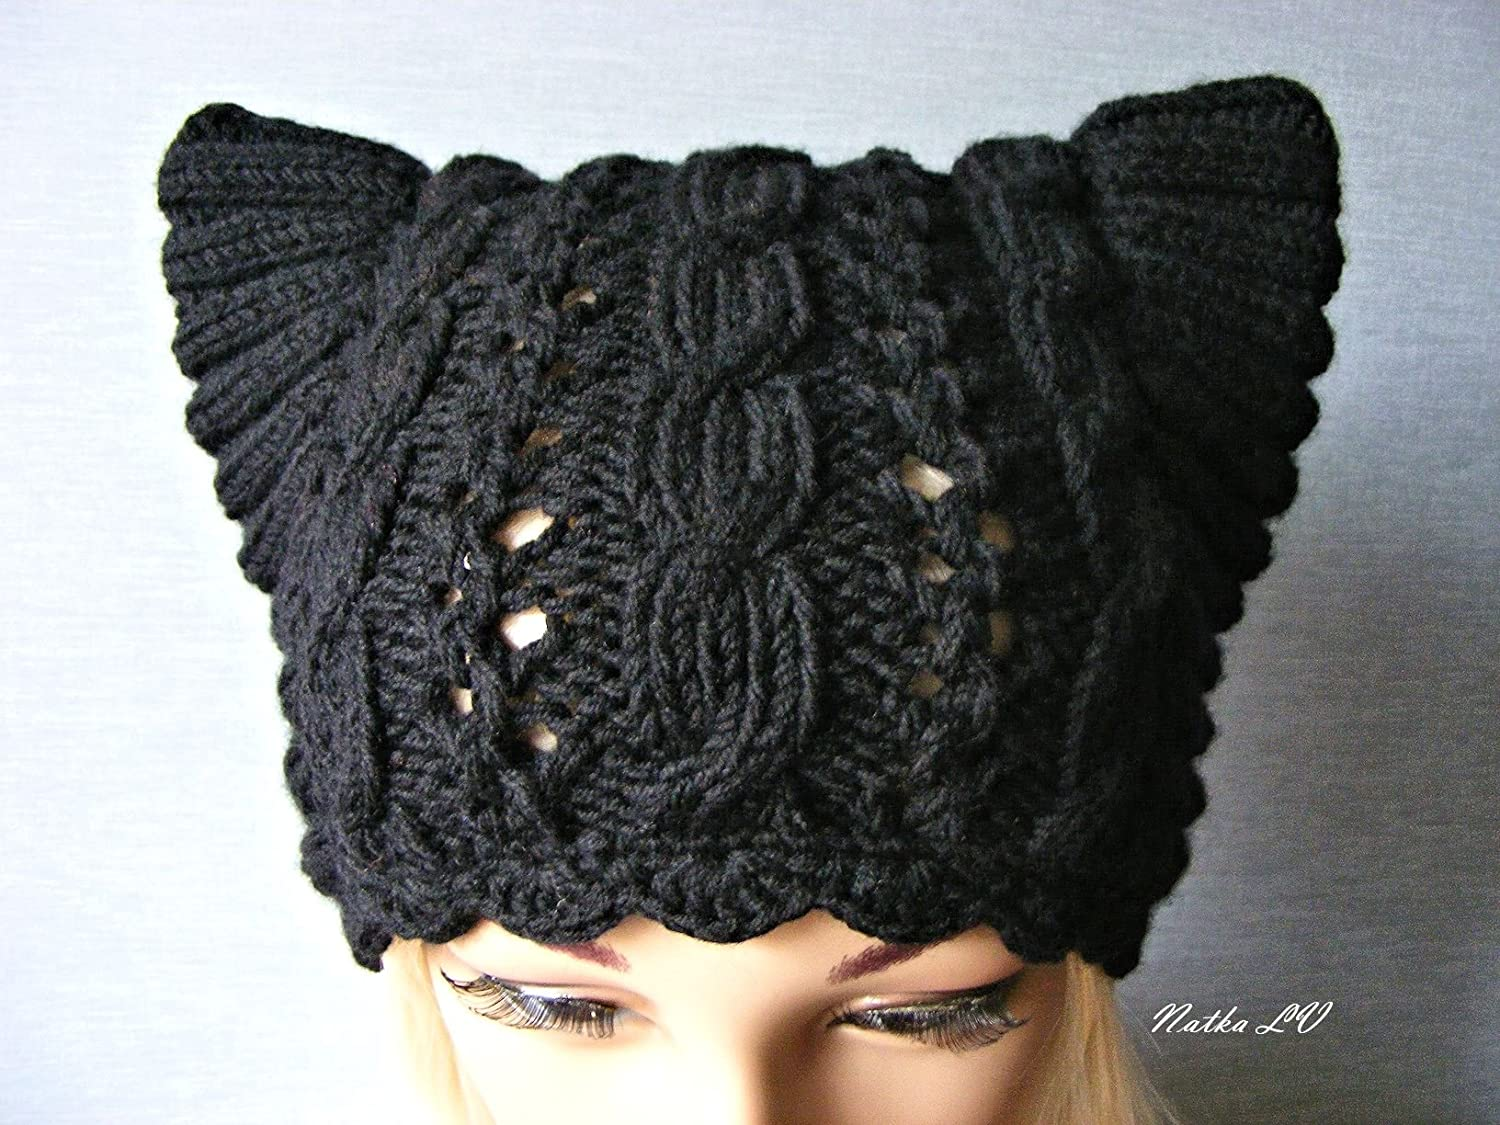 Knit cat hat, black cat hat, women's knitted hat, adult cat ear hat, knit wool beanie, teens animal hat, hat with small horns, winter wool hat, black pussy hat, handmade women' s knitted hat